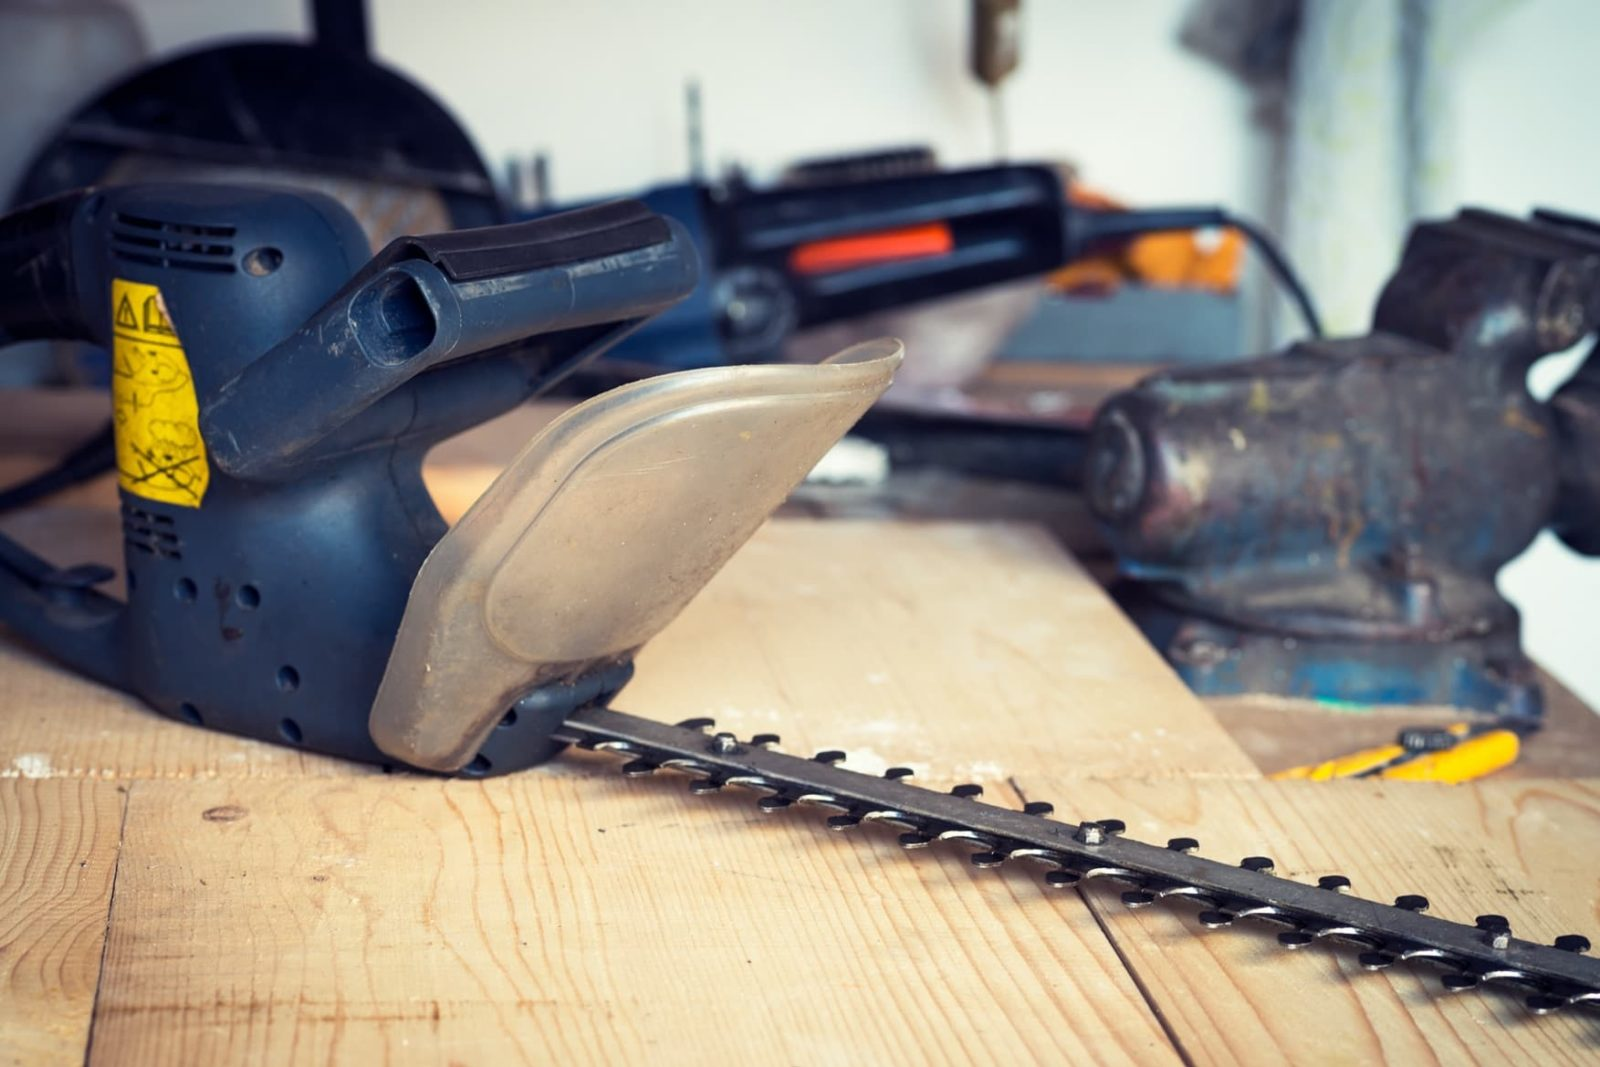 hedge trimmers being sharpened on a workshop table